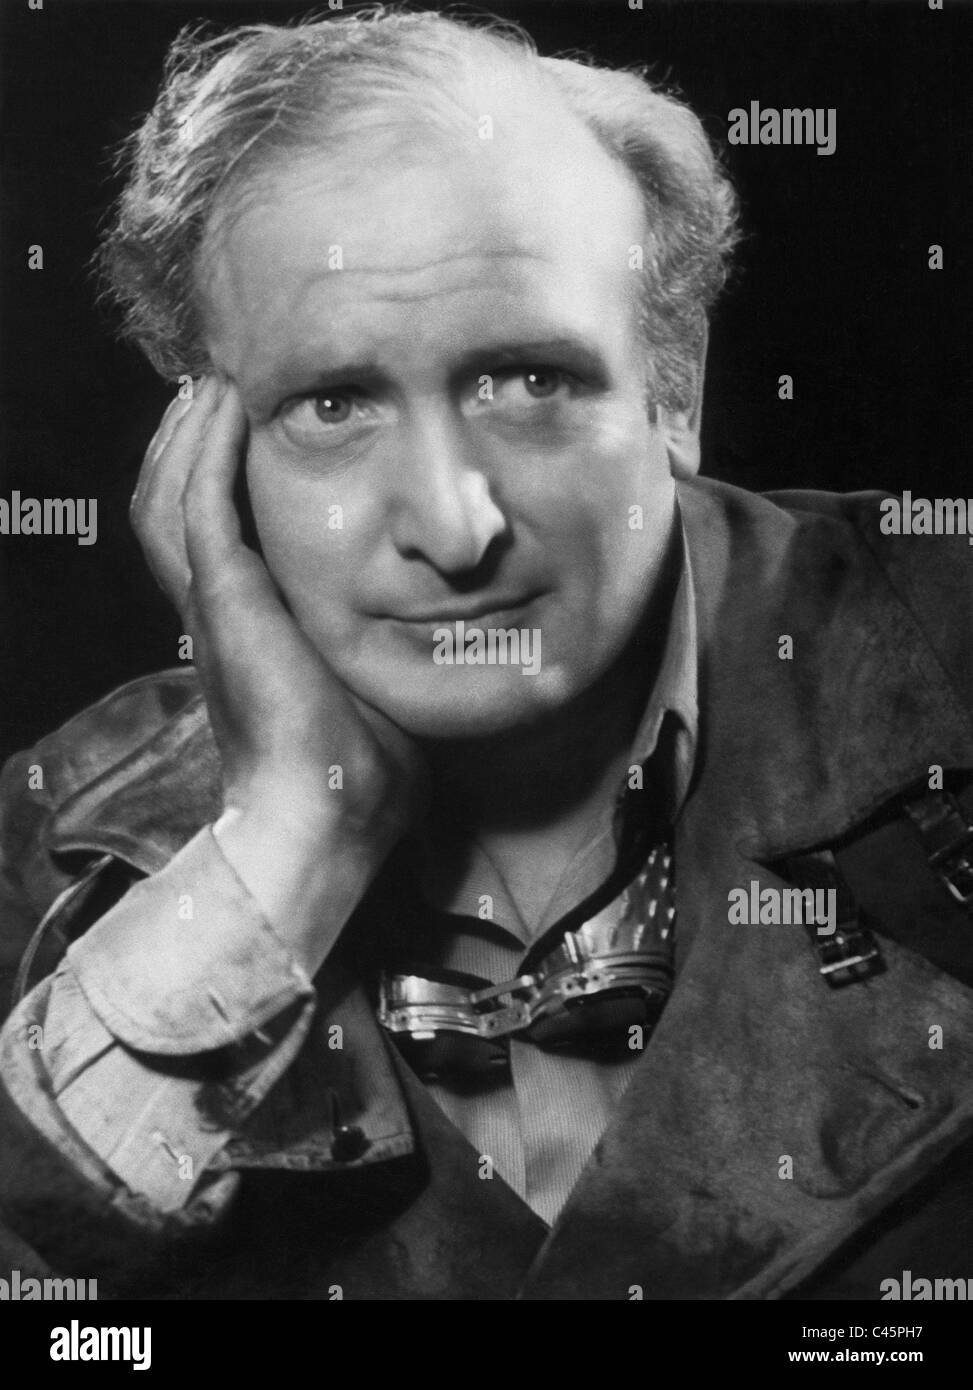 Hans Albers in 'Gold', 1934 - Stock Image